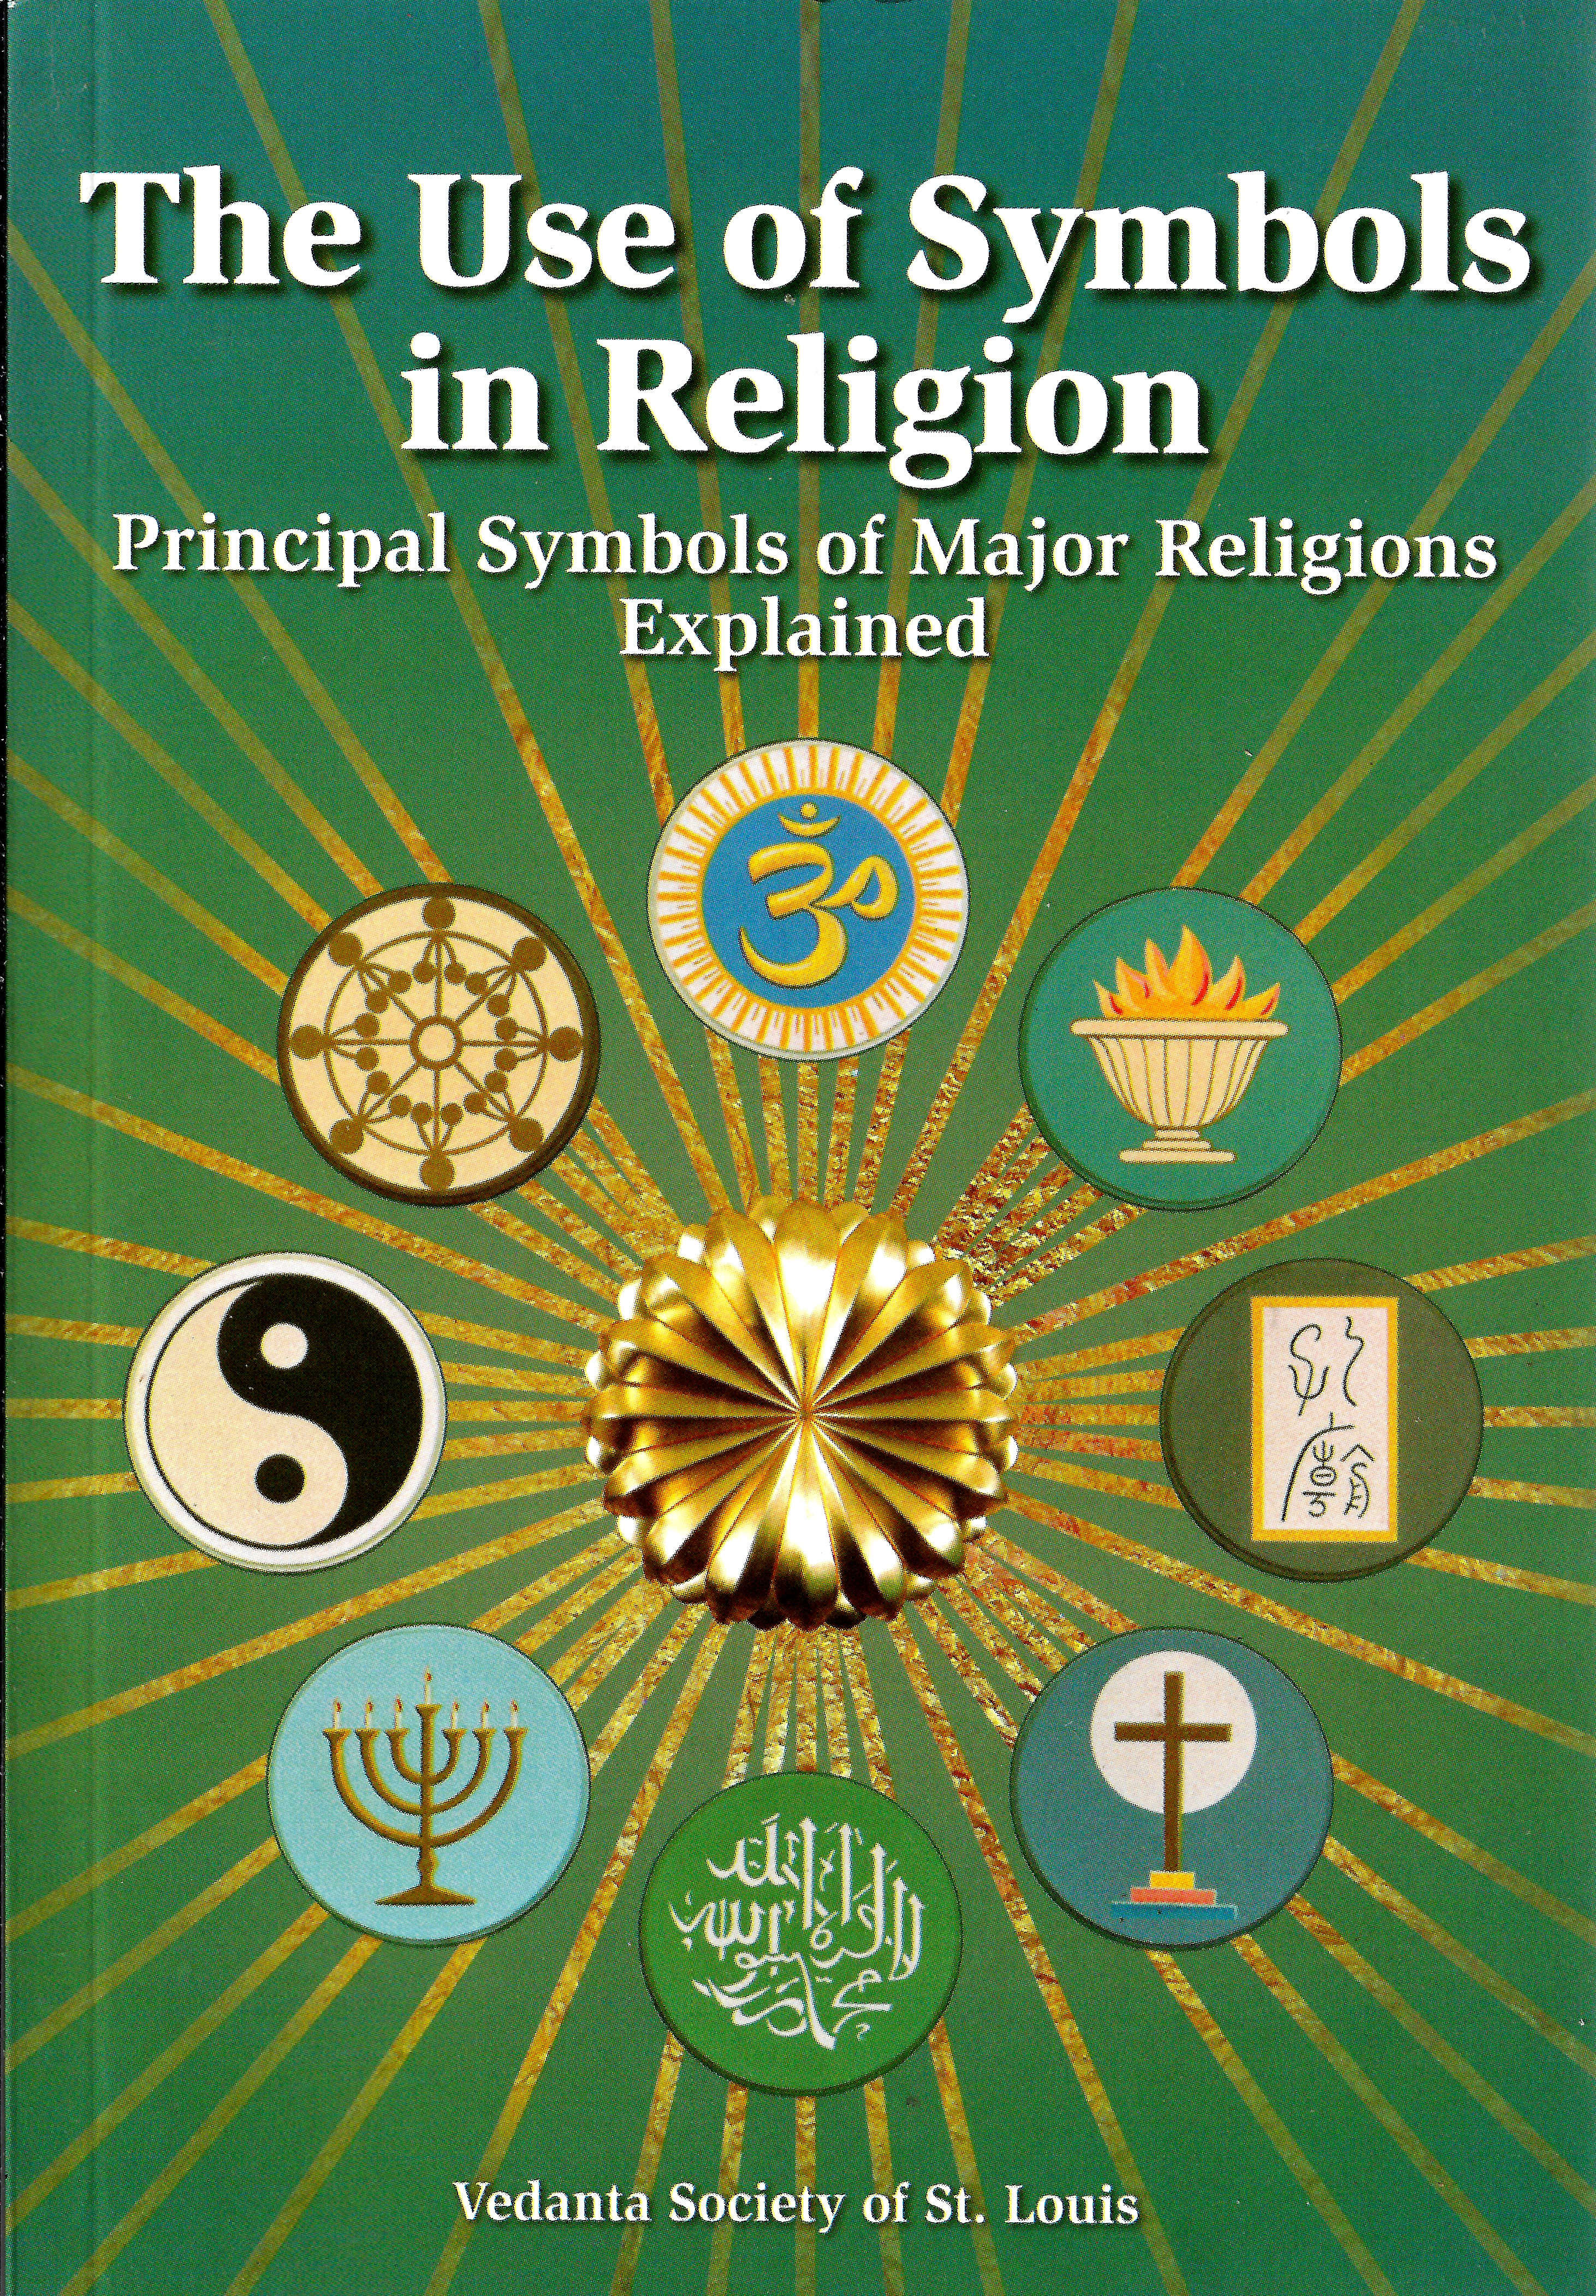 The Use of Symbols in Religion: Principal Symbols of Major Religions Explained